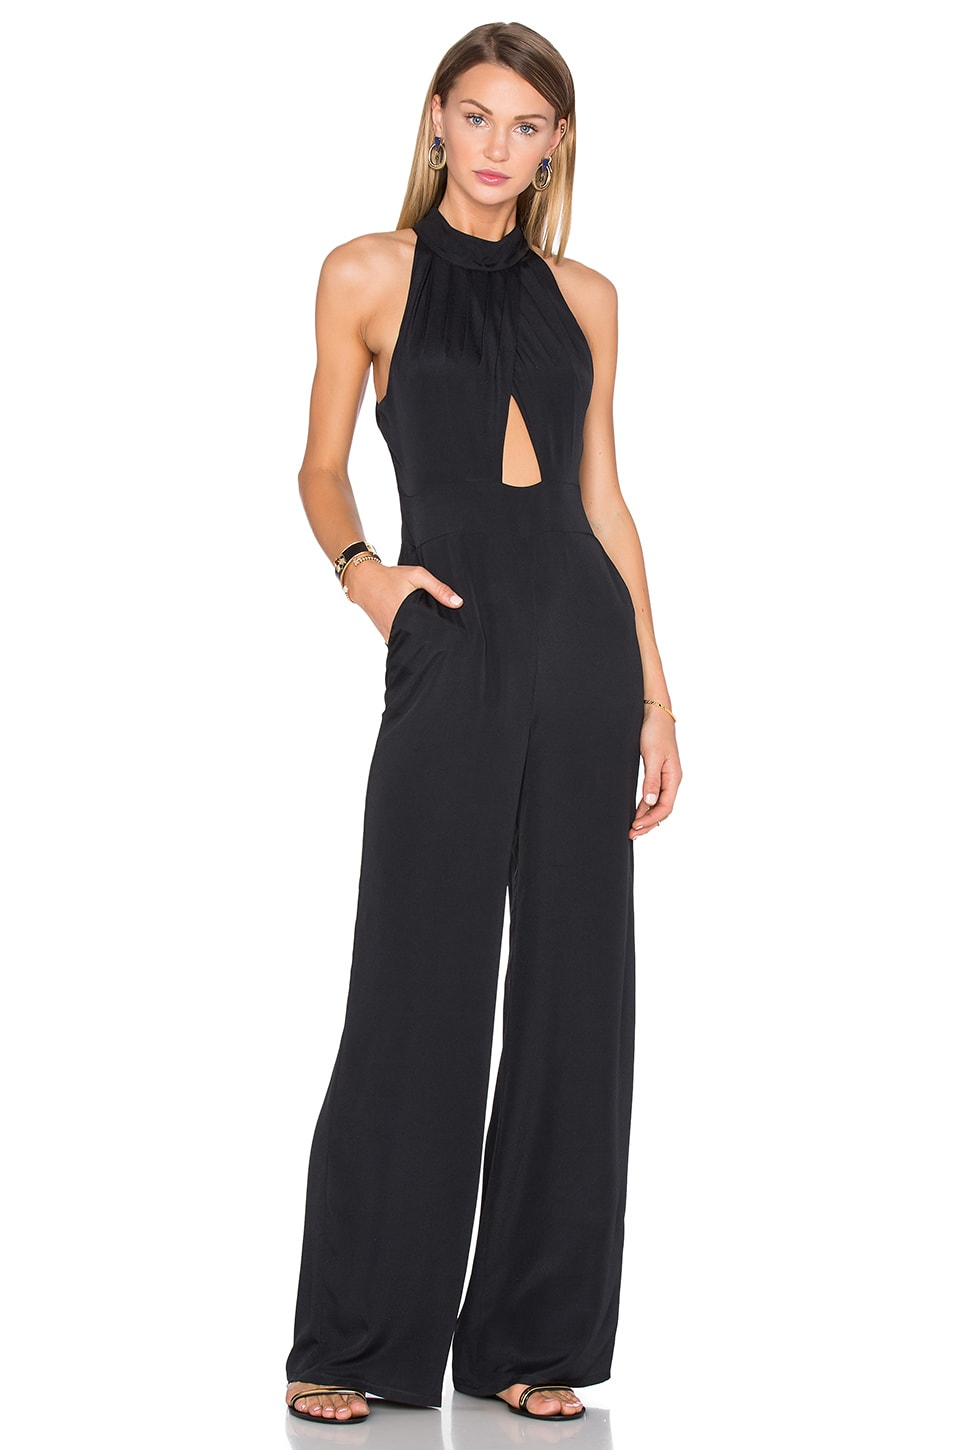 x REVOLVE Karen Jumpsuit by House of Harlow 1960